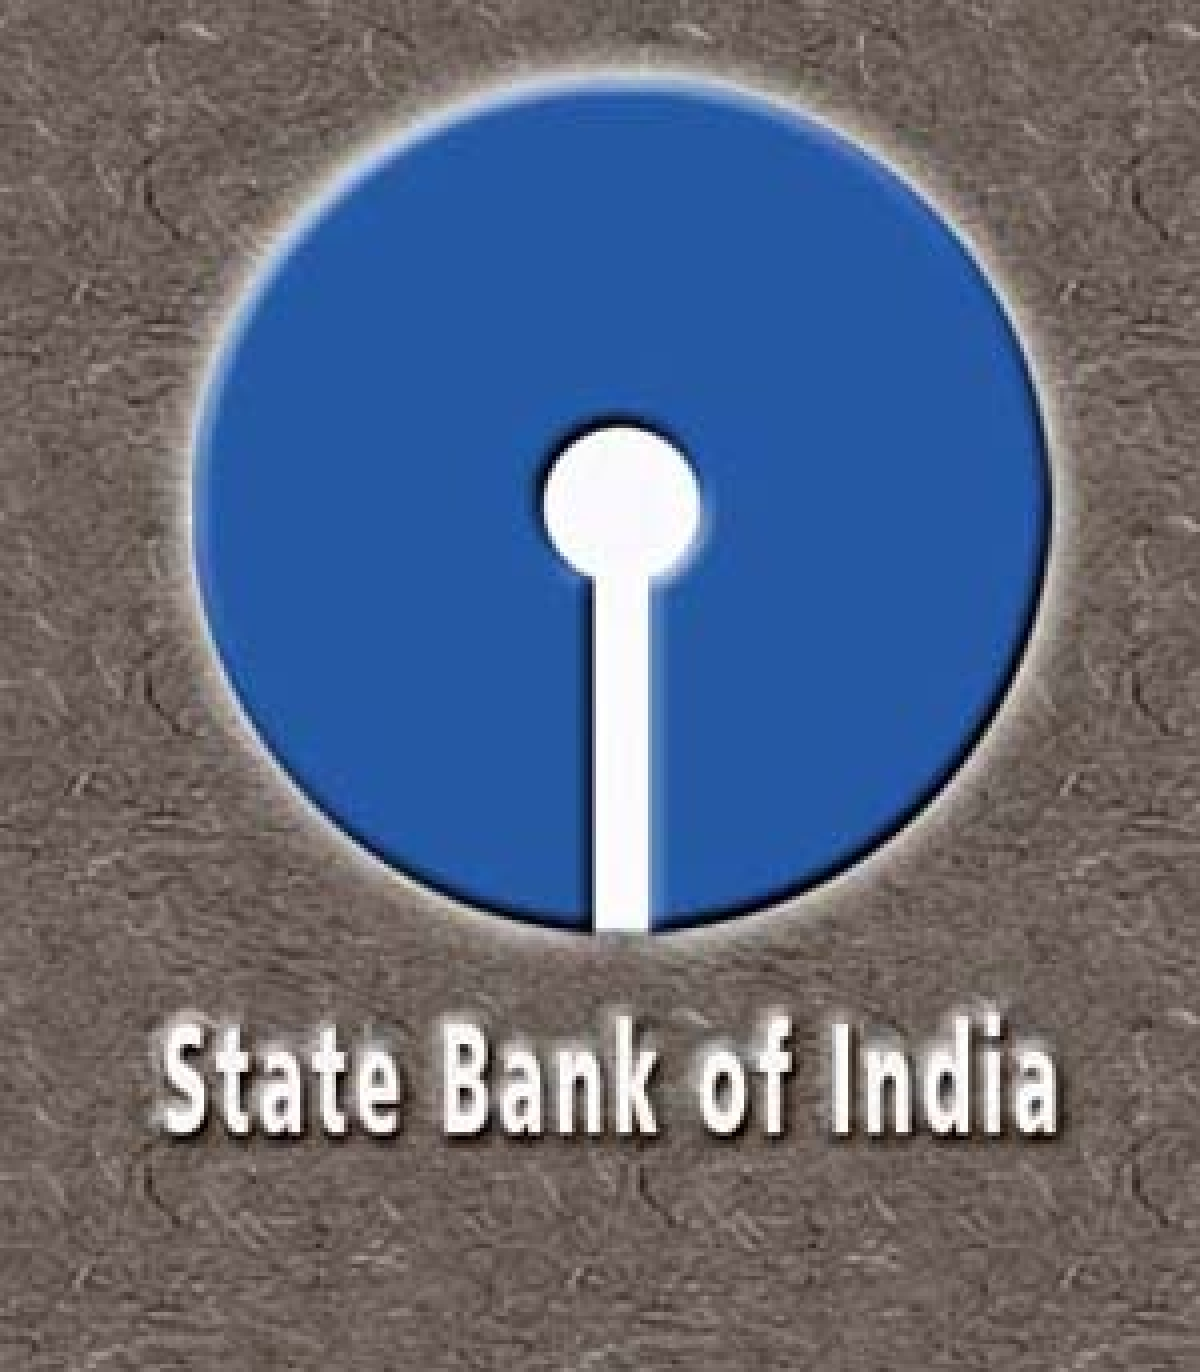 Will move RBI to offer fixed floating rate home loans: SBI